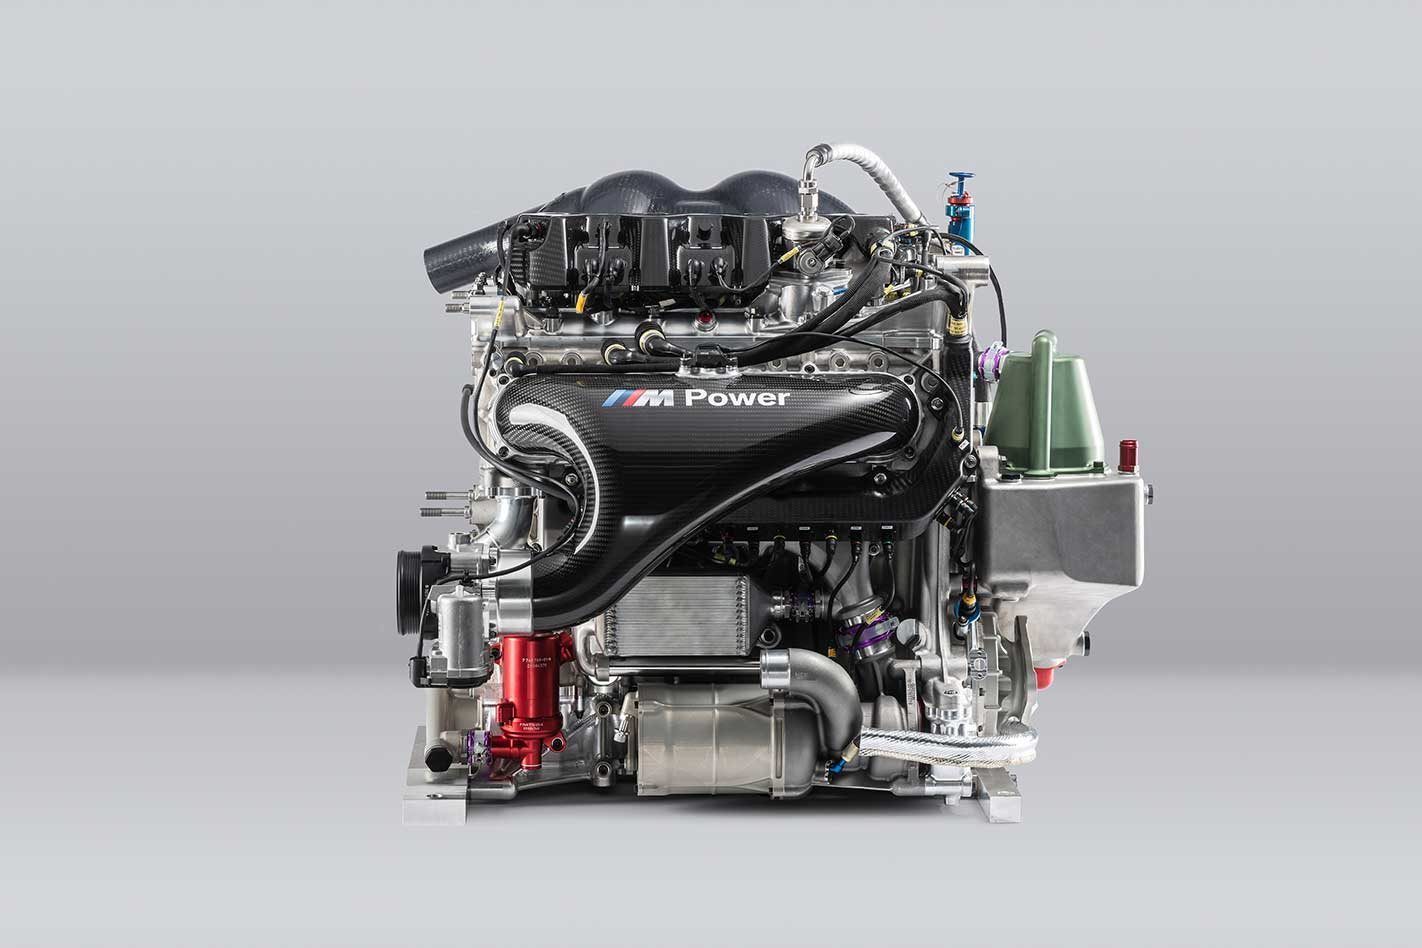 BMW's four-cylinder turbo DTM engine explained: Geek Speak